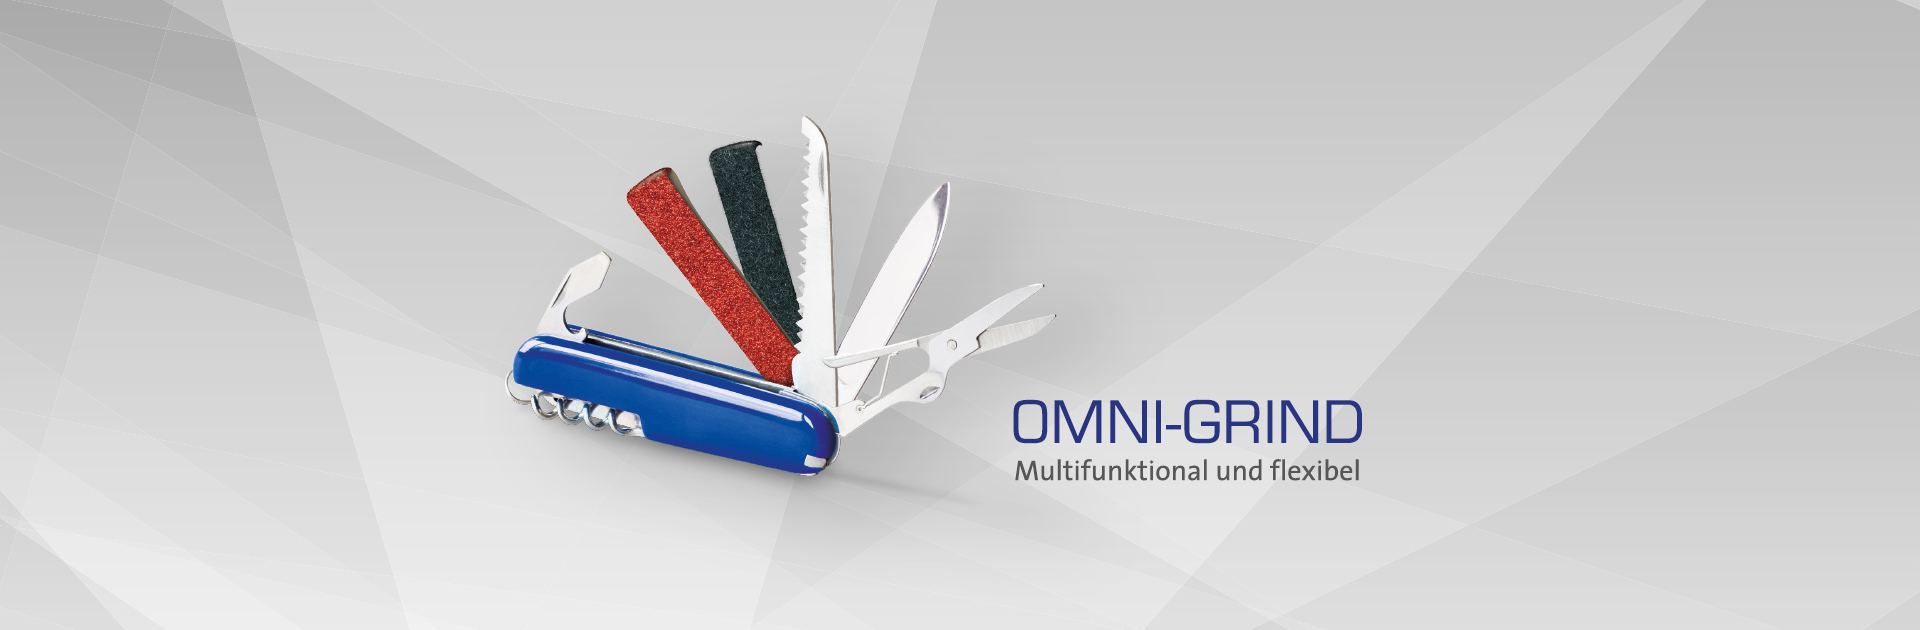 OMNI-GRIND - Multifunktional und flexibel